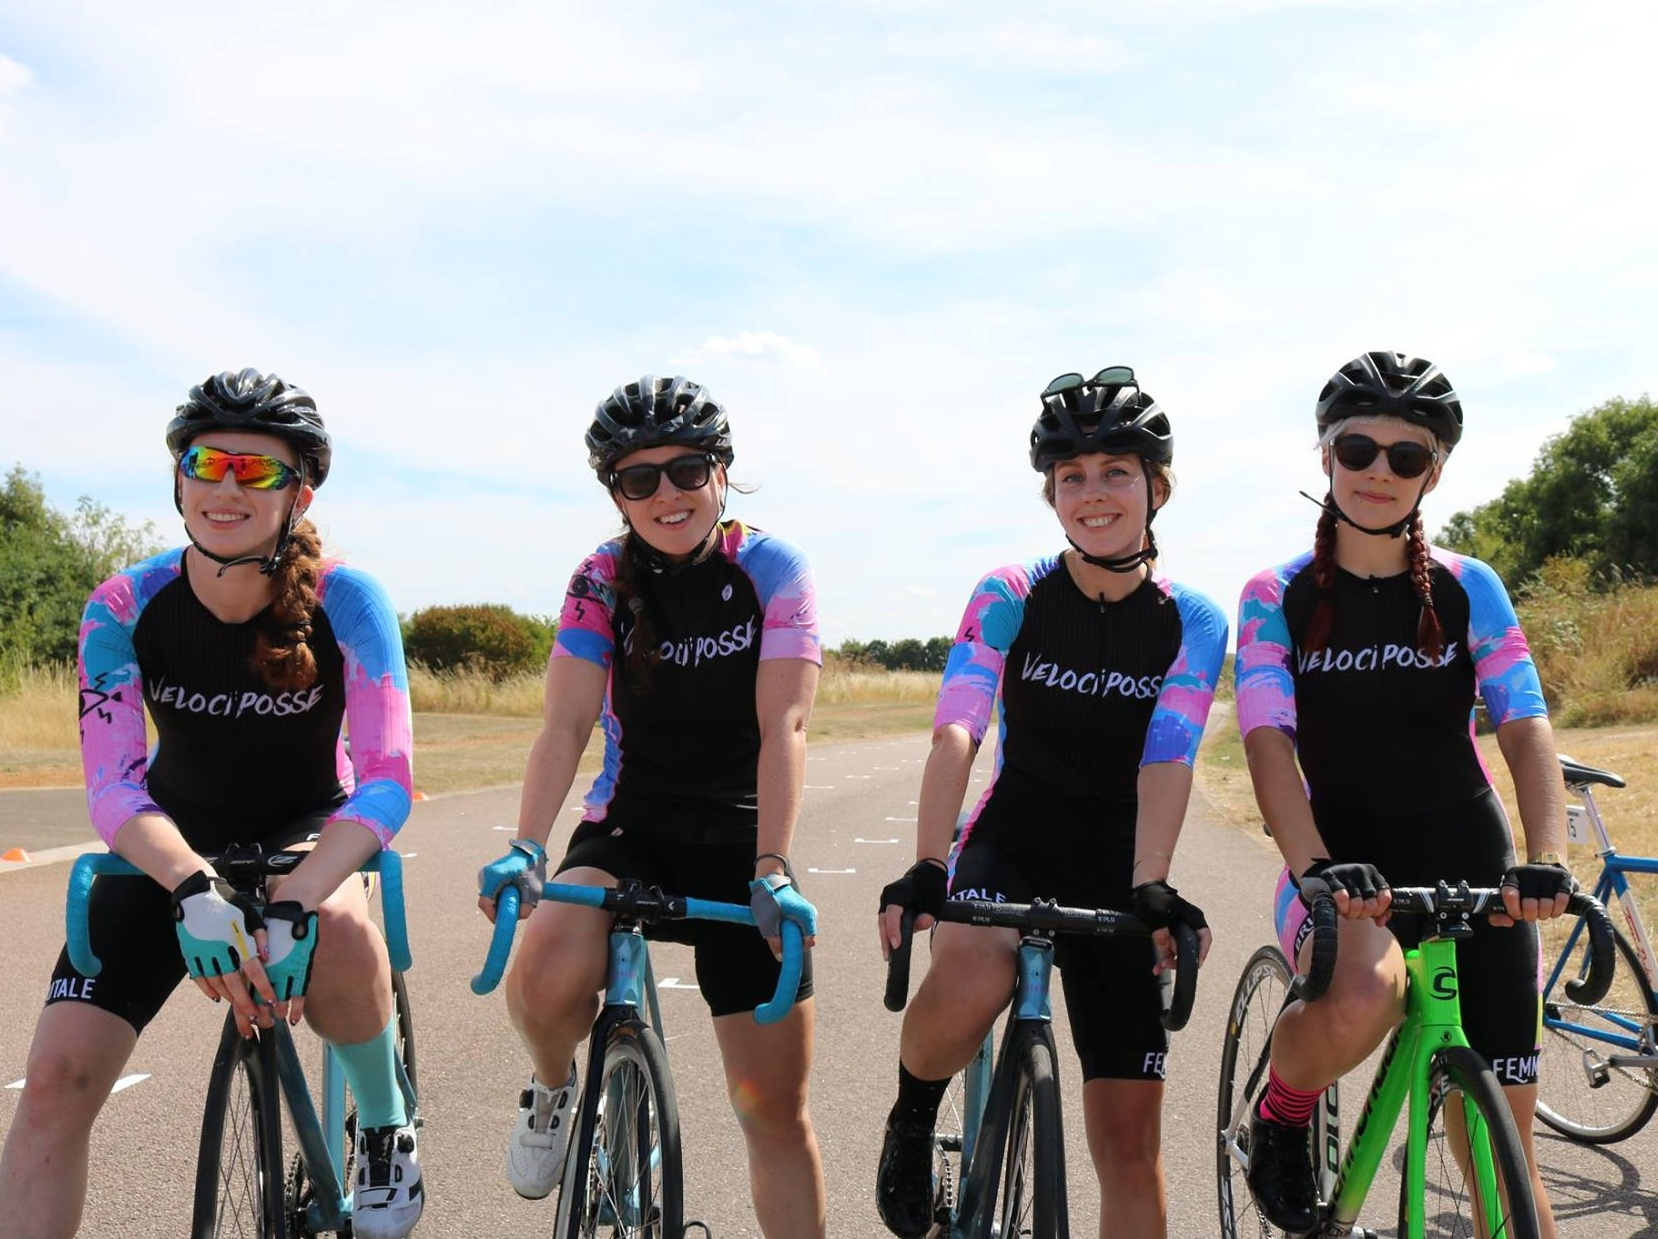 ABOUT US - We've got members of all abilities, from a national champion to women who are new to cycling. We also hold events and skills sessions with the aim of increasing women's participation in cycling.